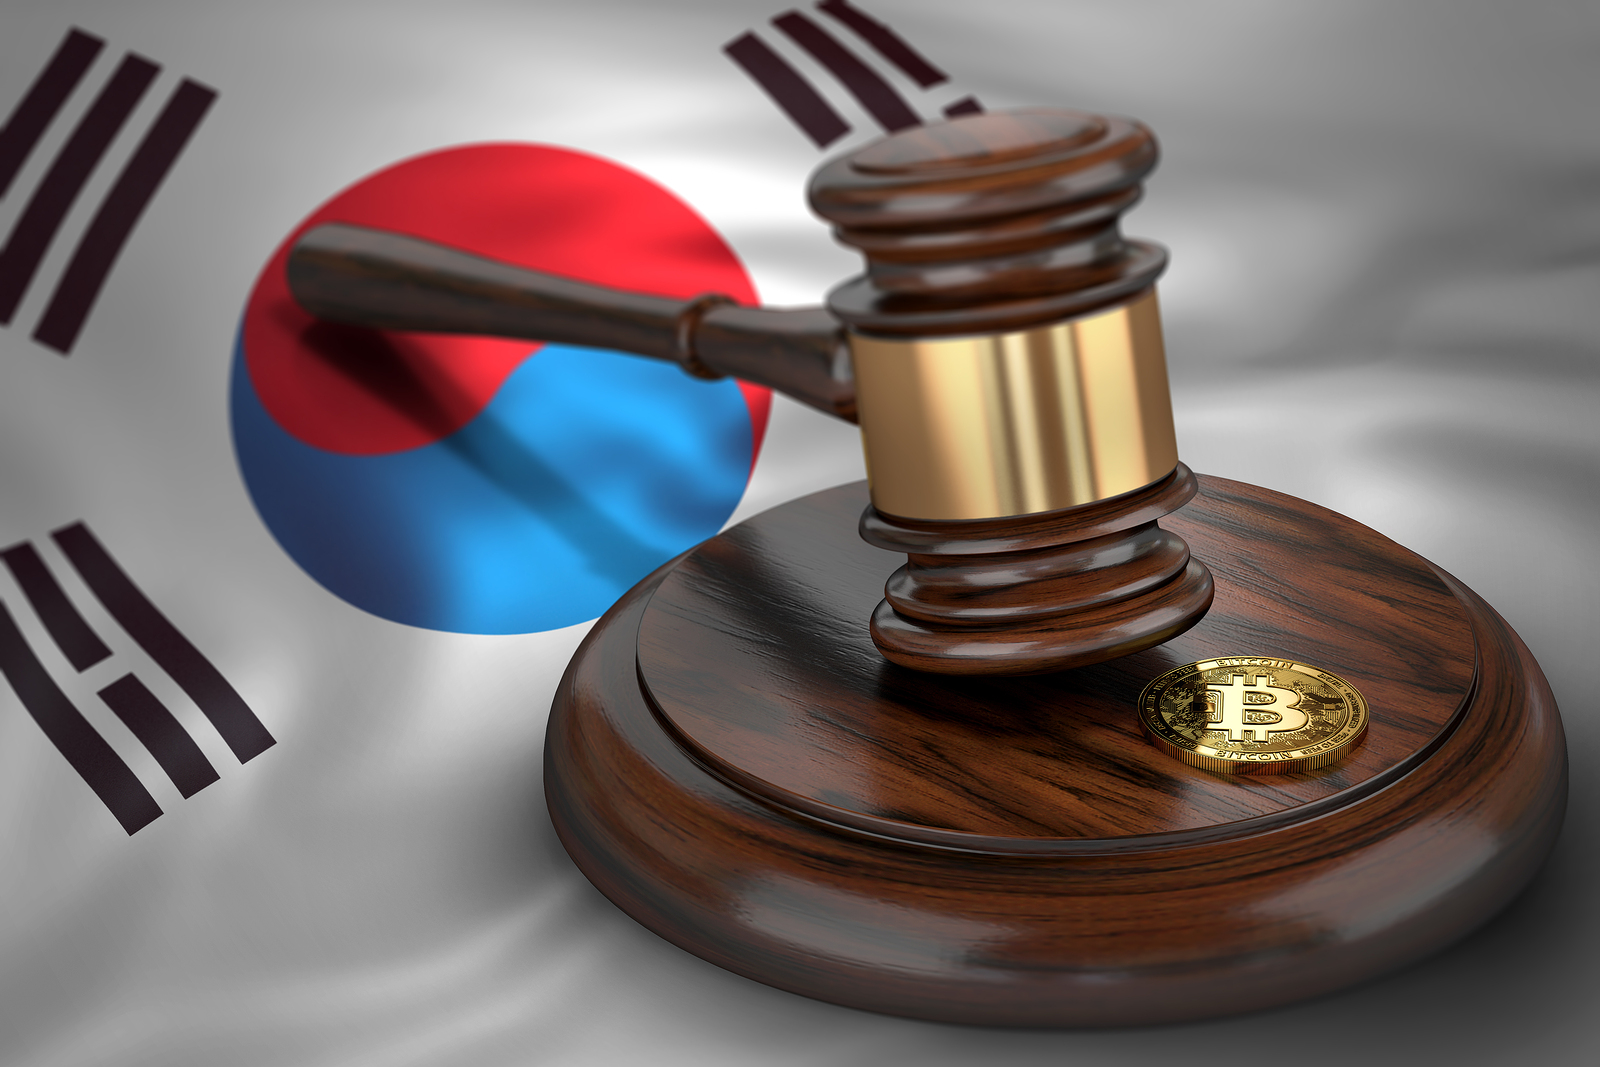 Experts say new South Korean crypto rules will create a monopolized market